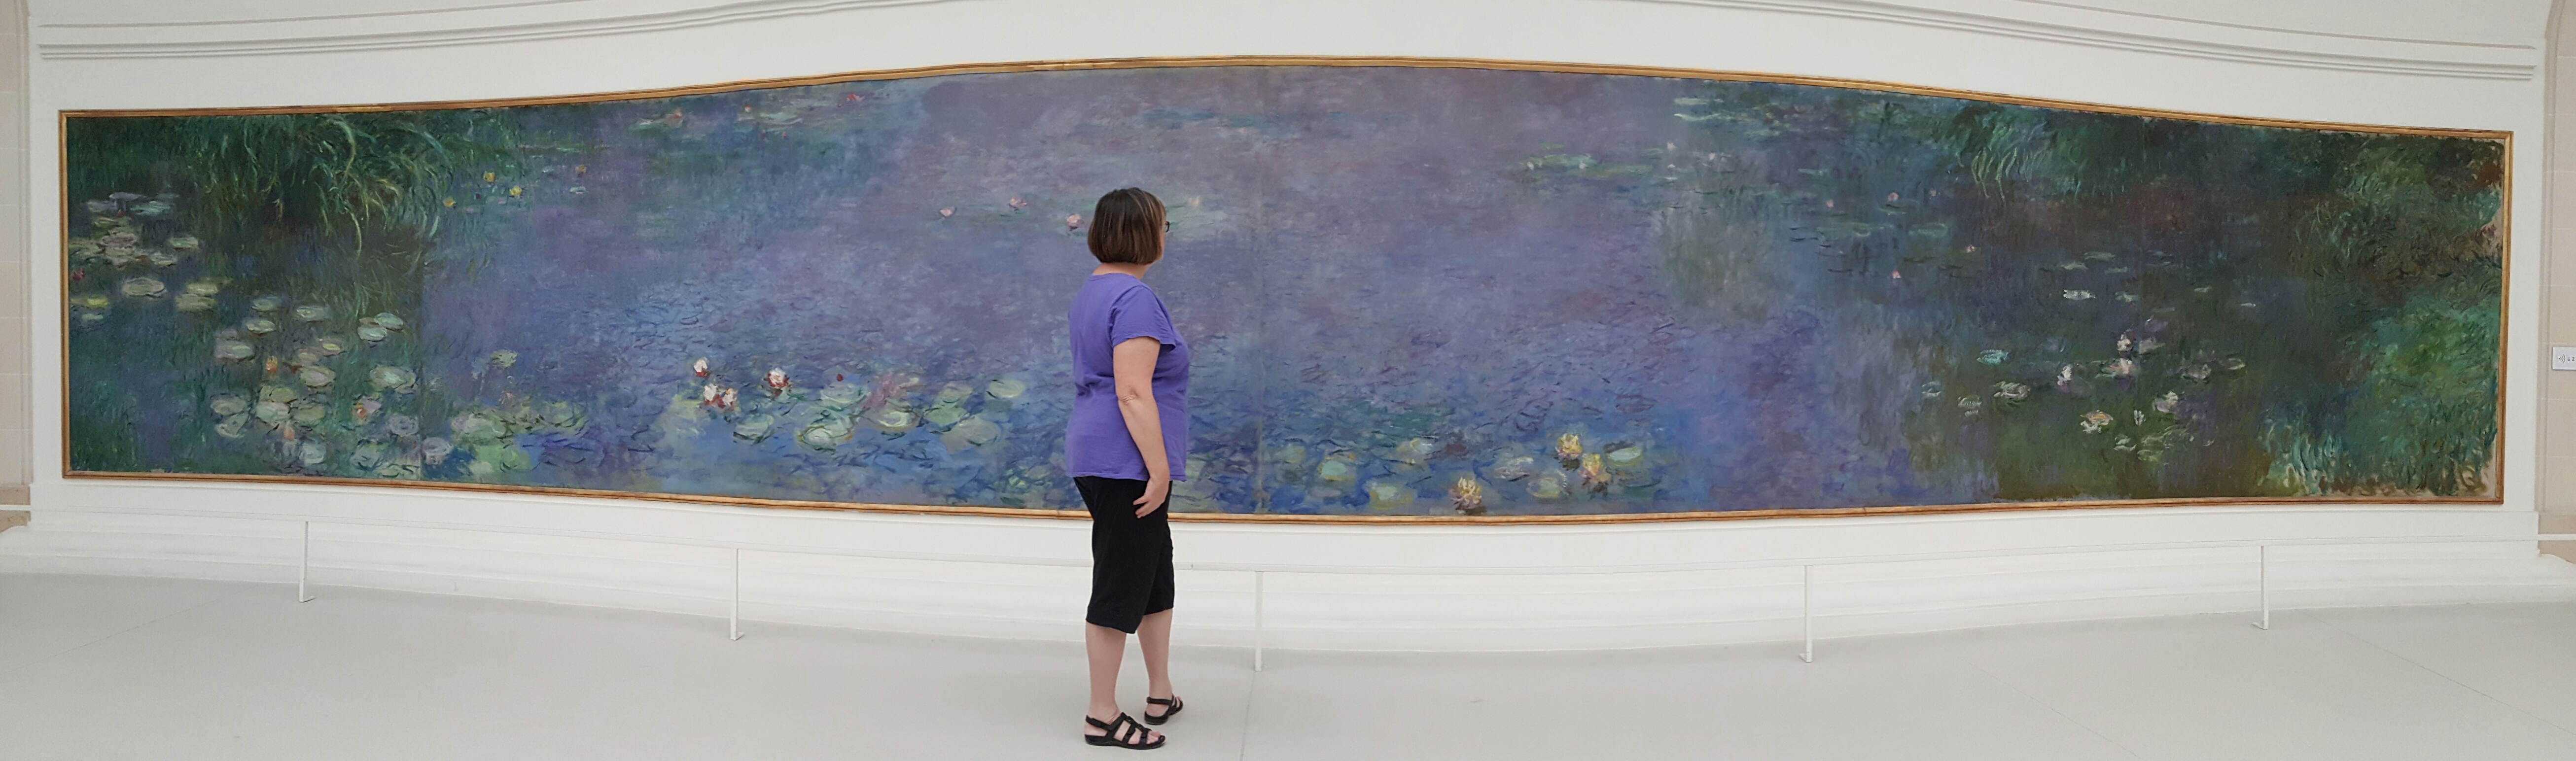 Monet's water lilies, Paris